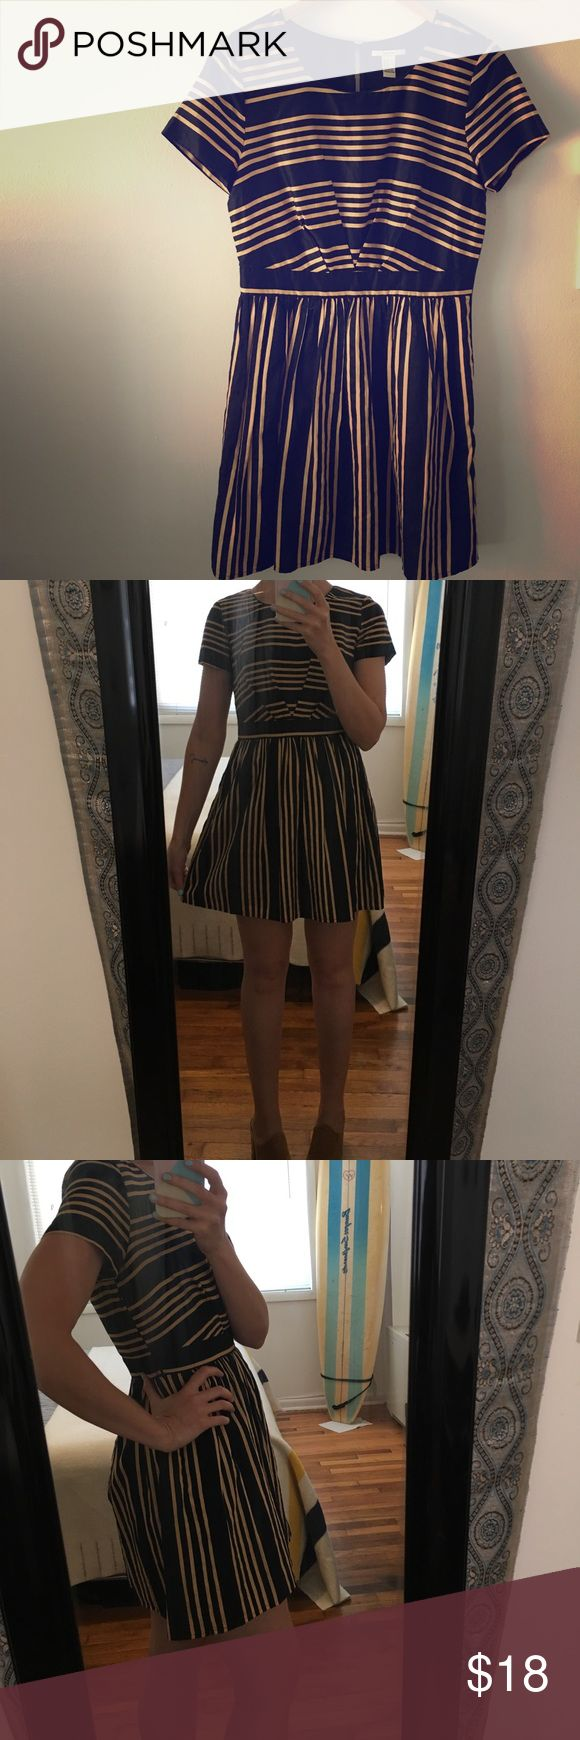 "Retro-style striped cocktail dress Invoke your inner Betty Draper in this super cute mod mini dress. Measures 33.5"" from shoulder to hem. Fully lined. Outer layer 100% cotton, lining 100% polyester. Forever 21 Dresses"